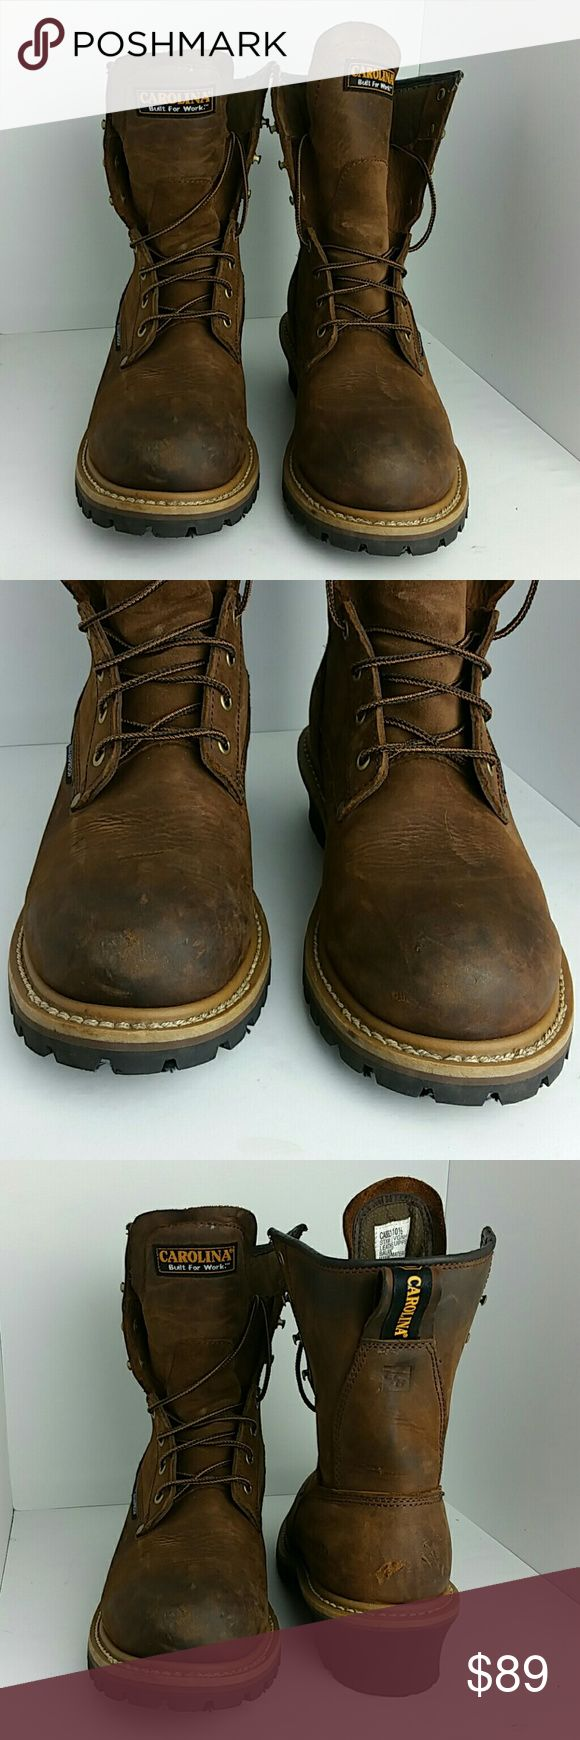 """CAROLINA 8 """" WATERPROOF MEN'S LOGGER BOOT IN GOOD CONDITION WITH MINOR SCRATCHES   SKE # BK Carolina Shoes Boots"""